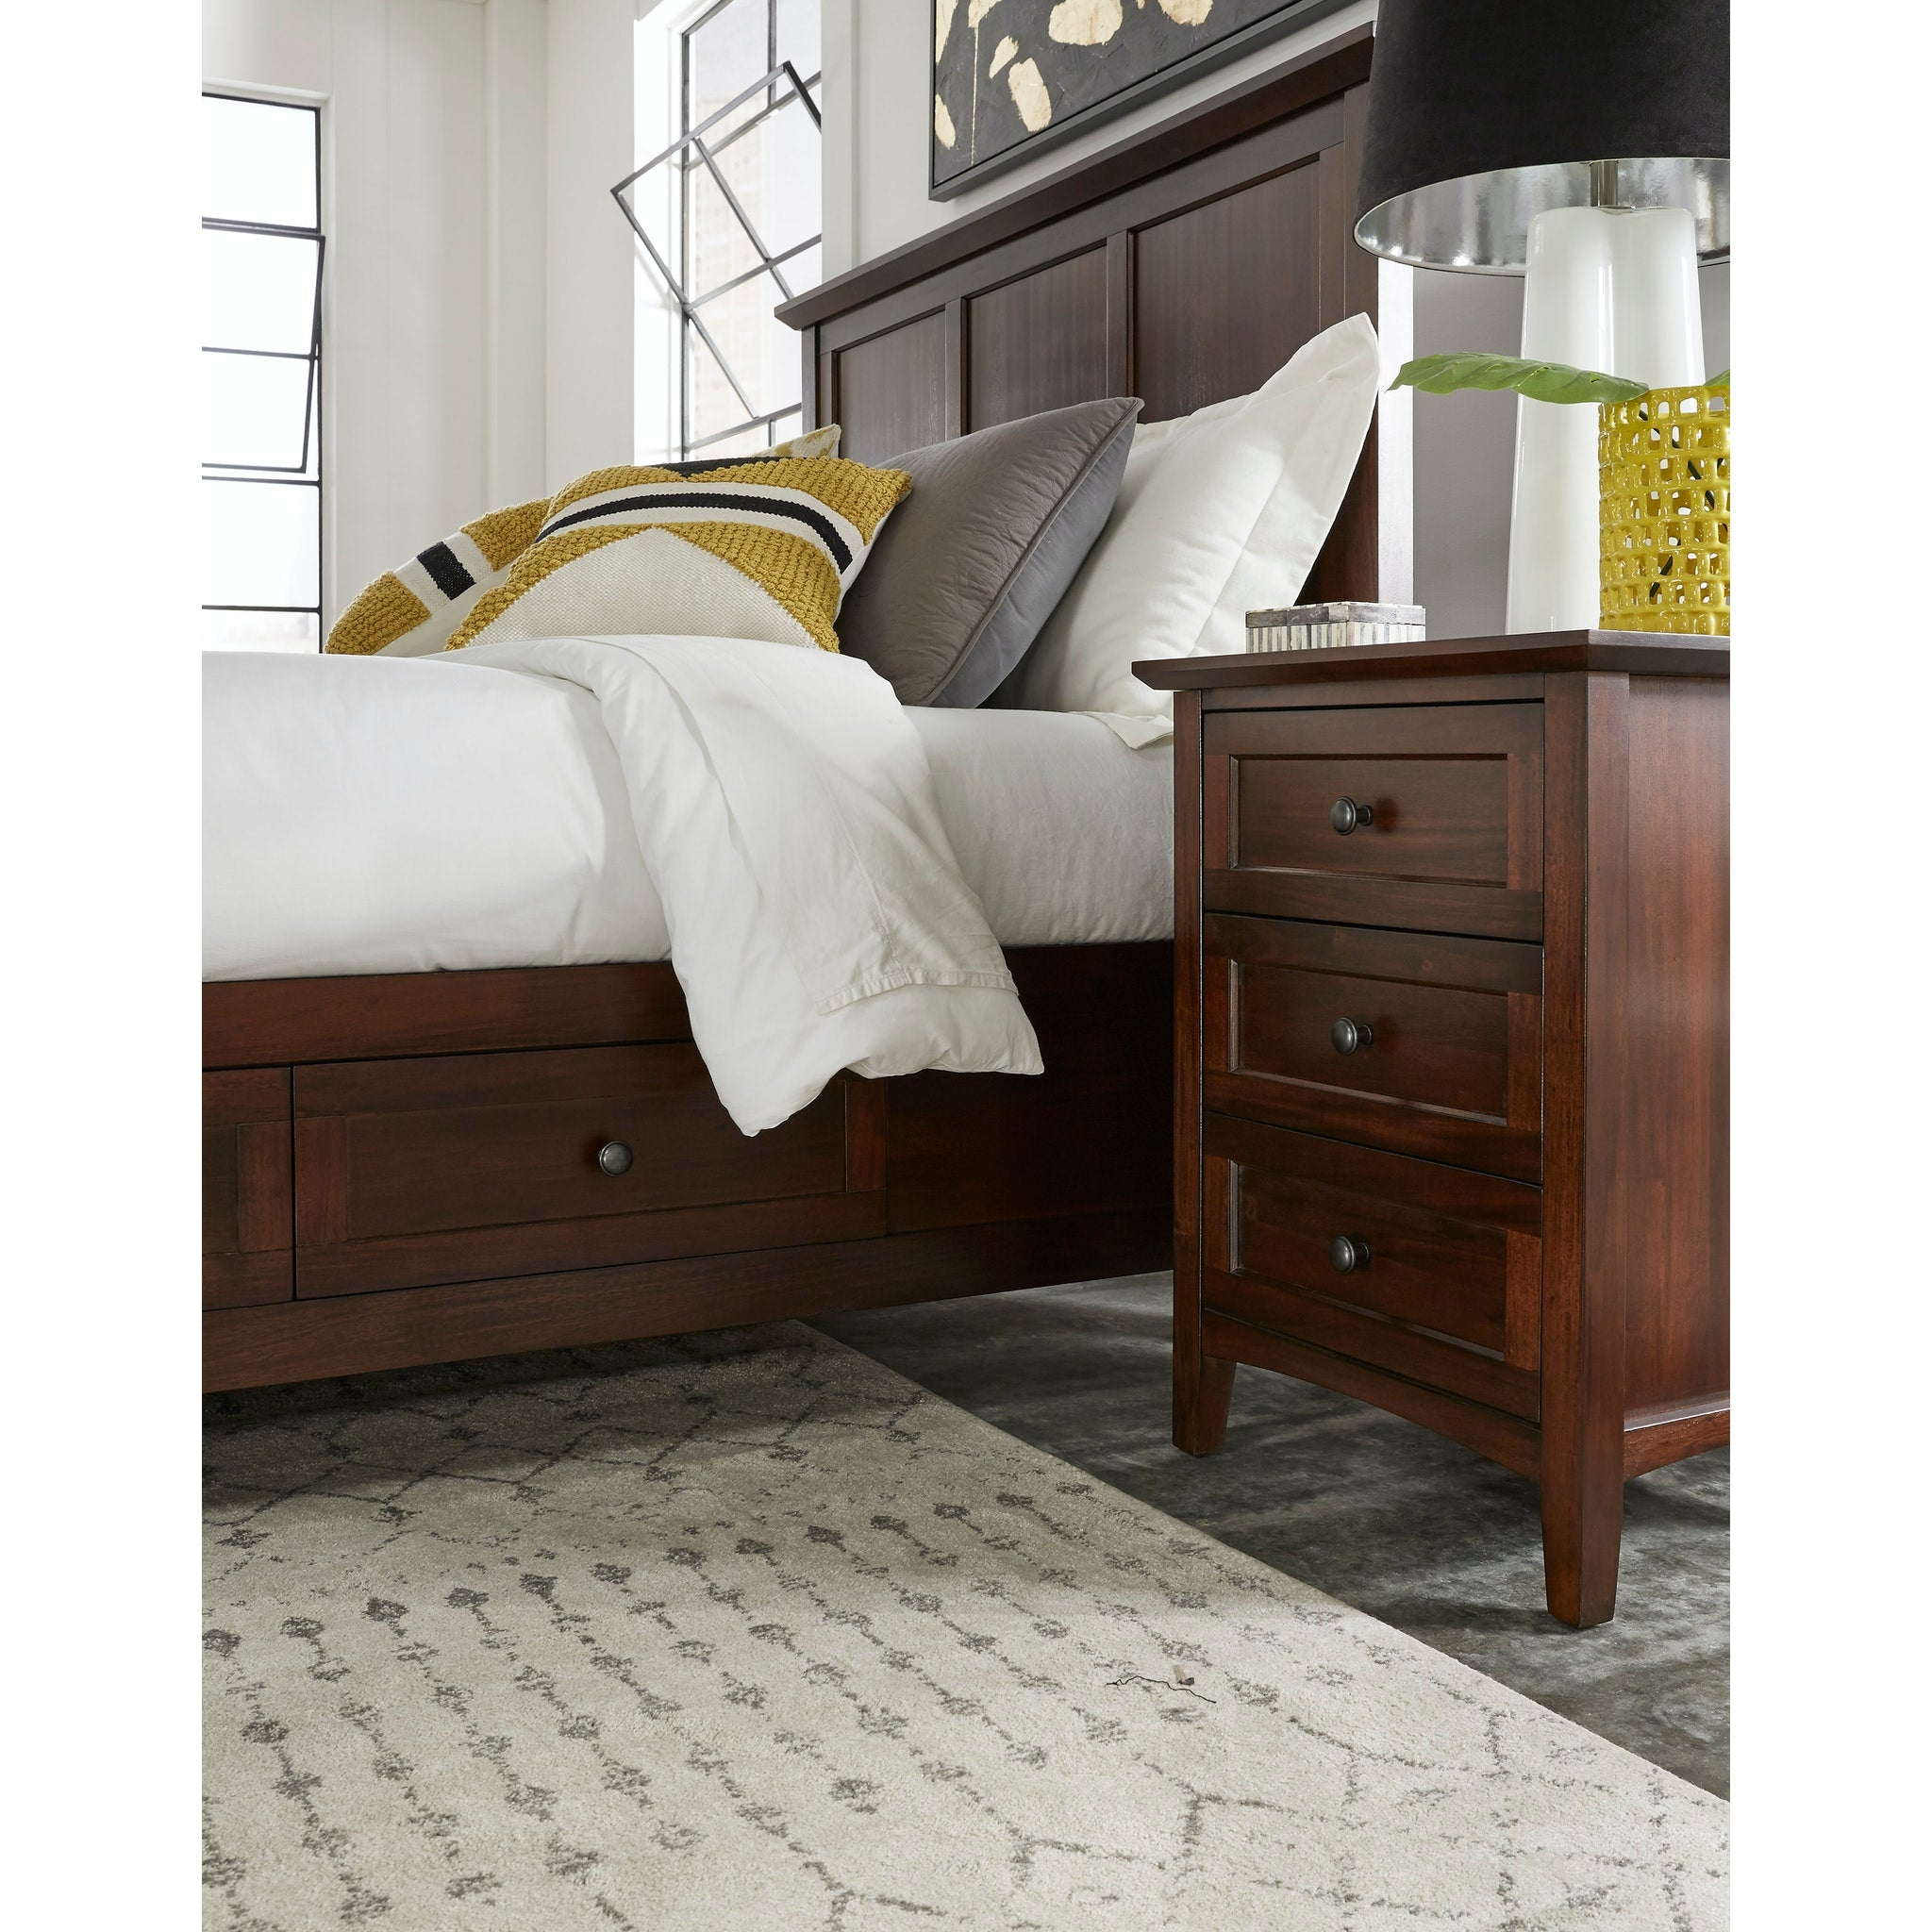 Paragon Three Drawer Nightstand in Truffle